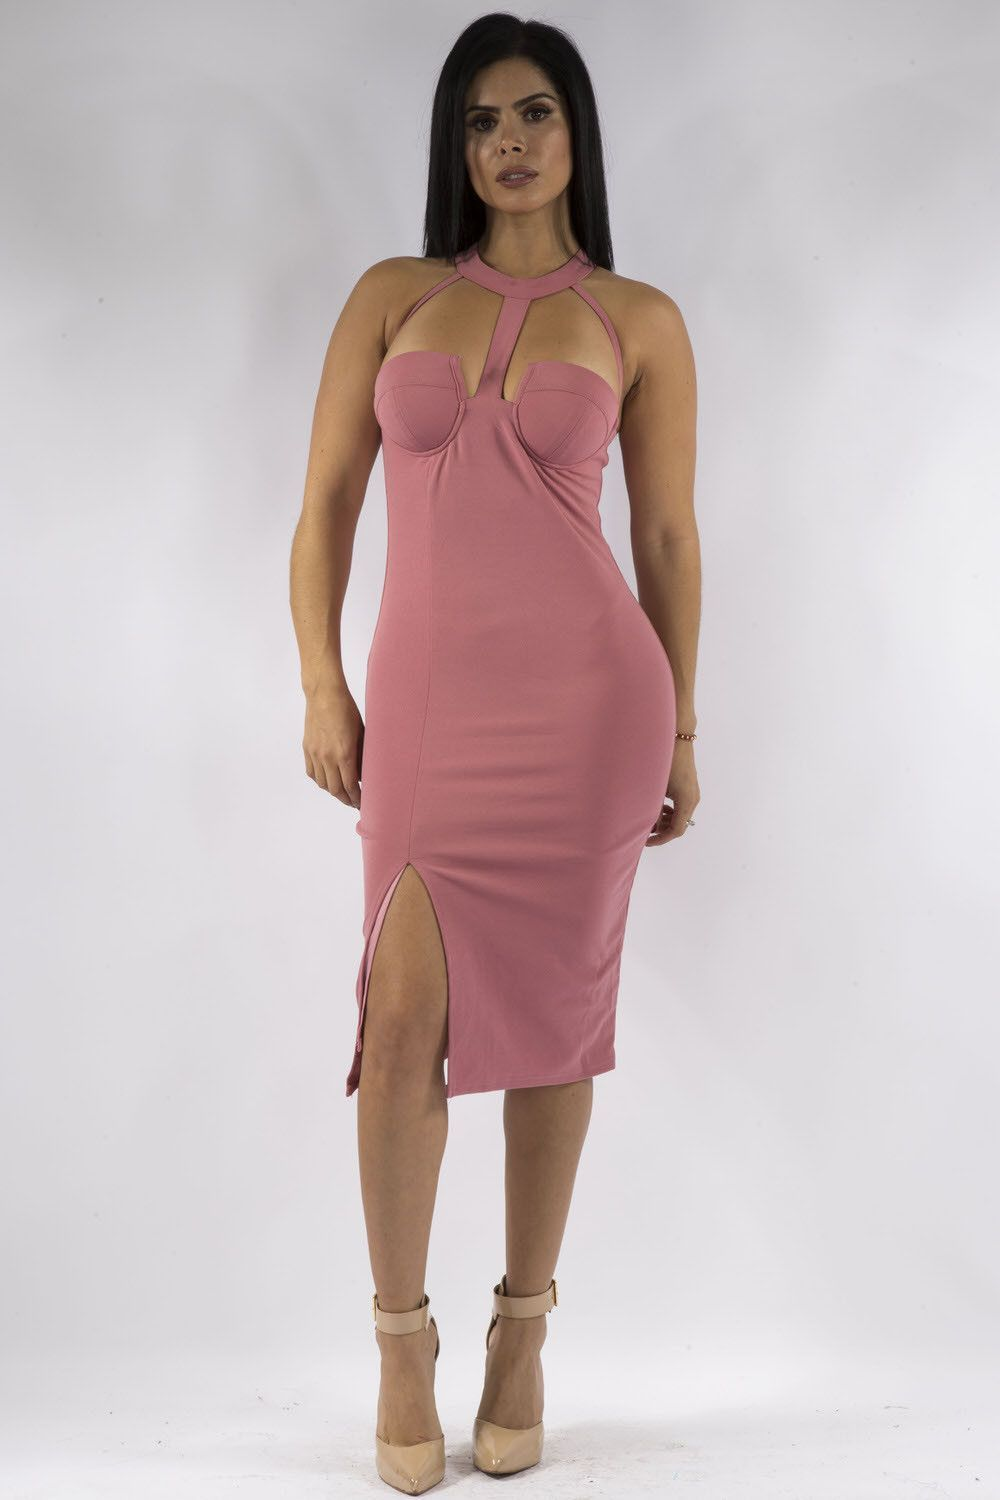 Size 7 dress pictures